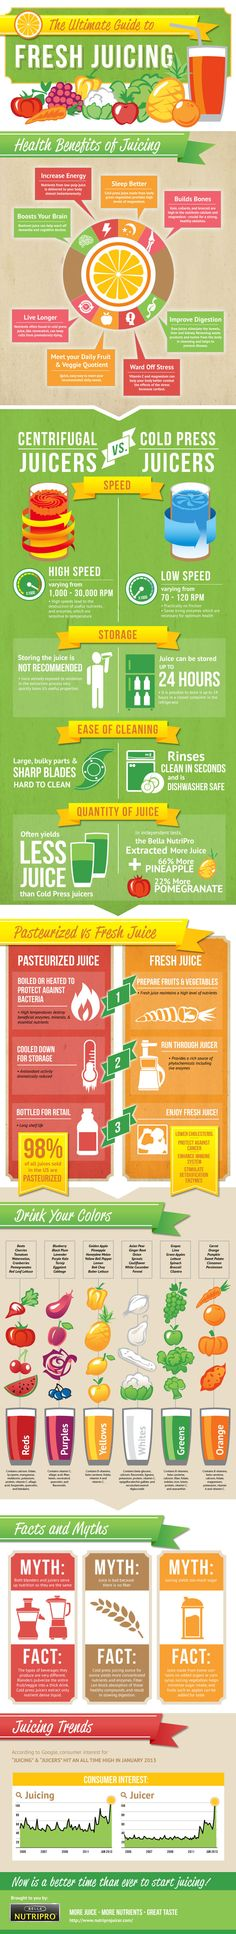 Infograph on fresh juicing. Ninan verkkareissa - Blogi | Lily.fi